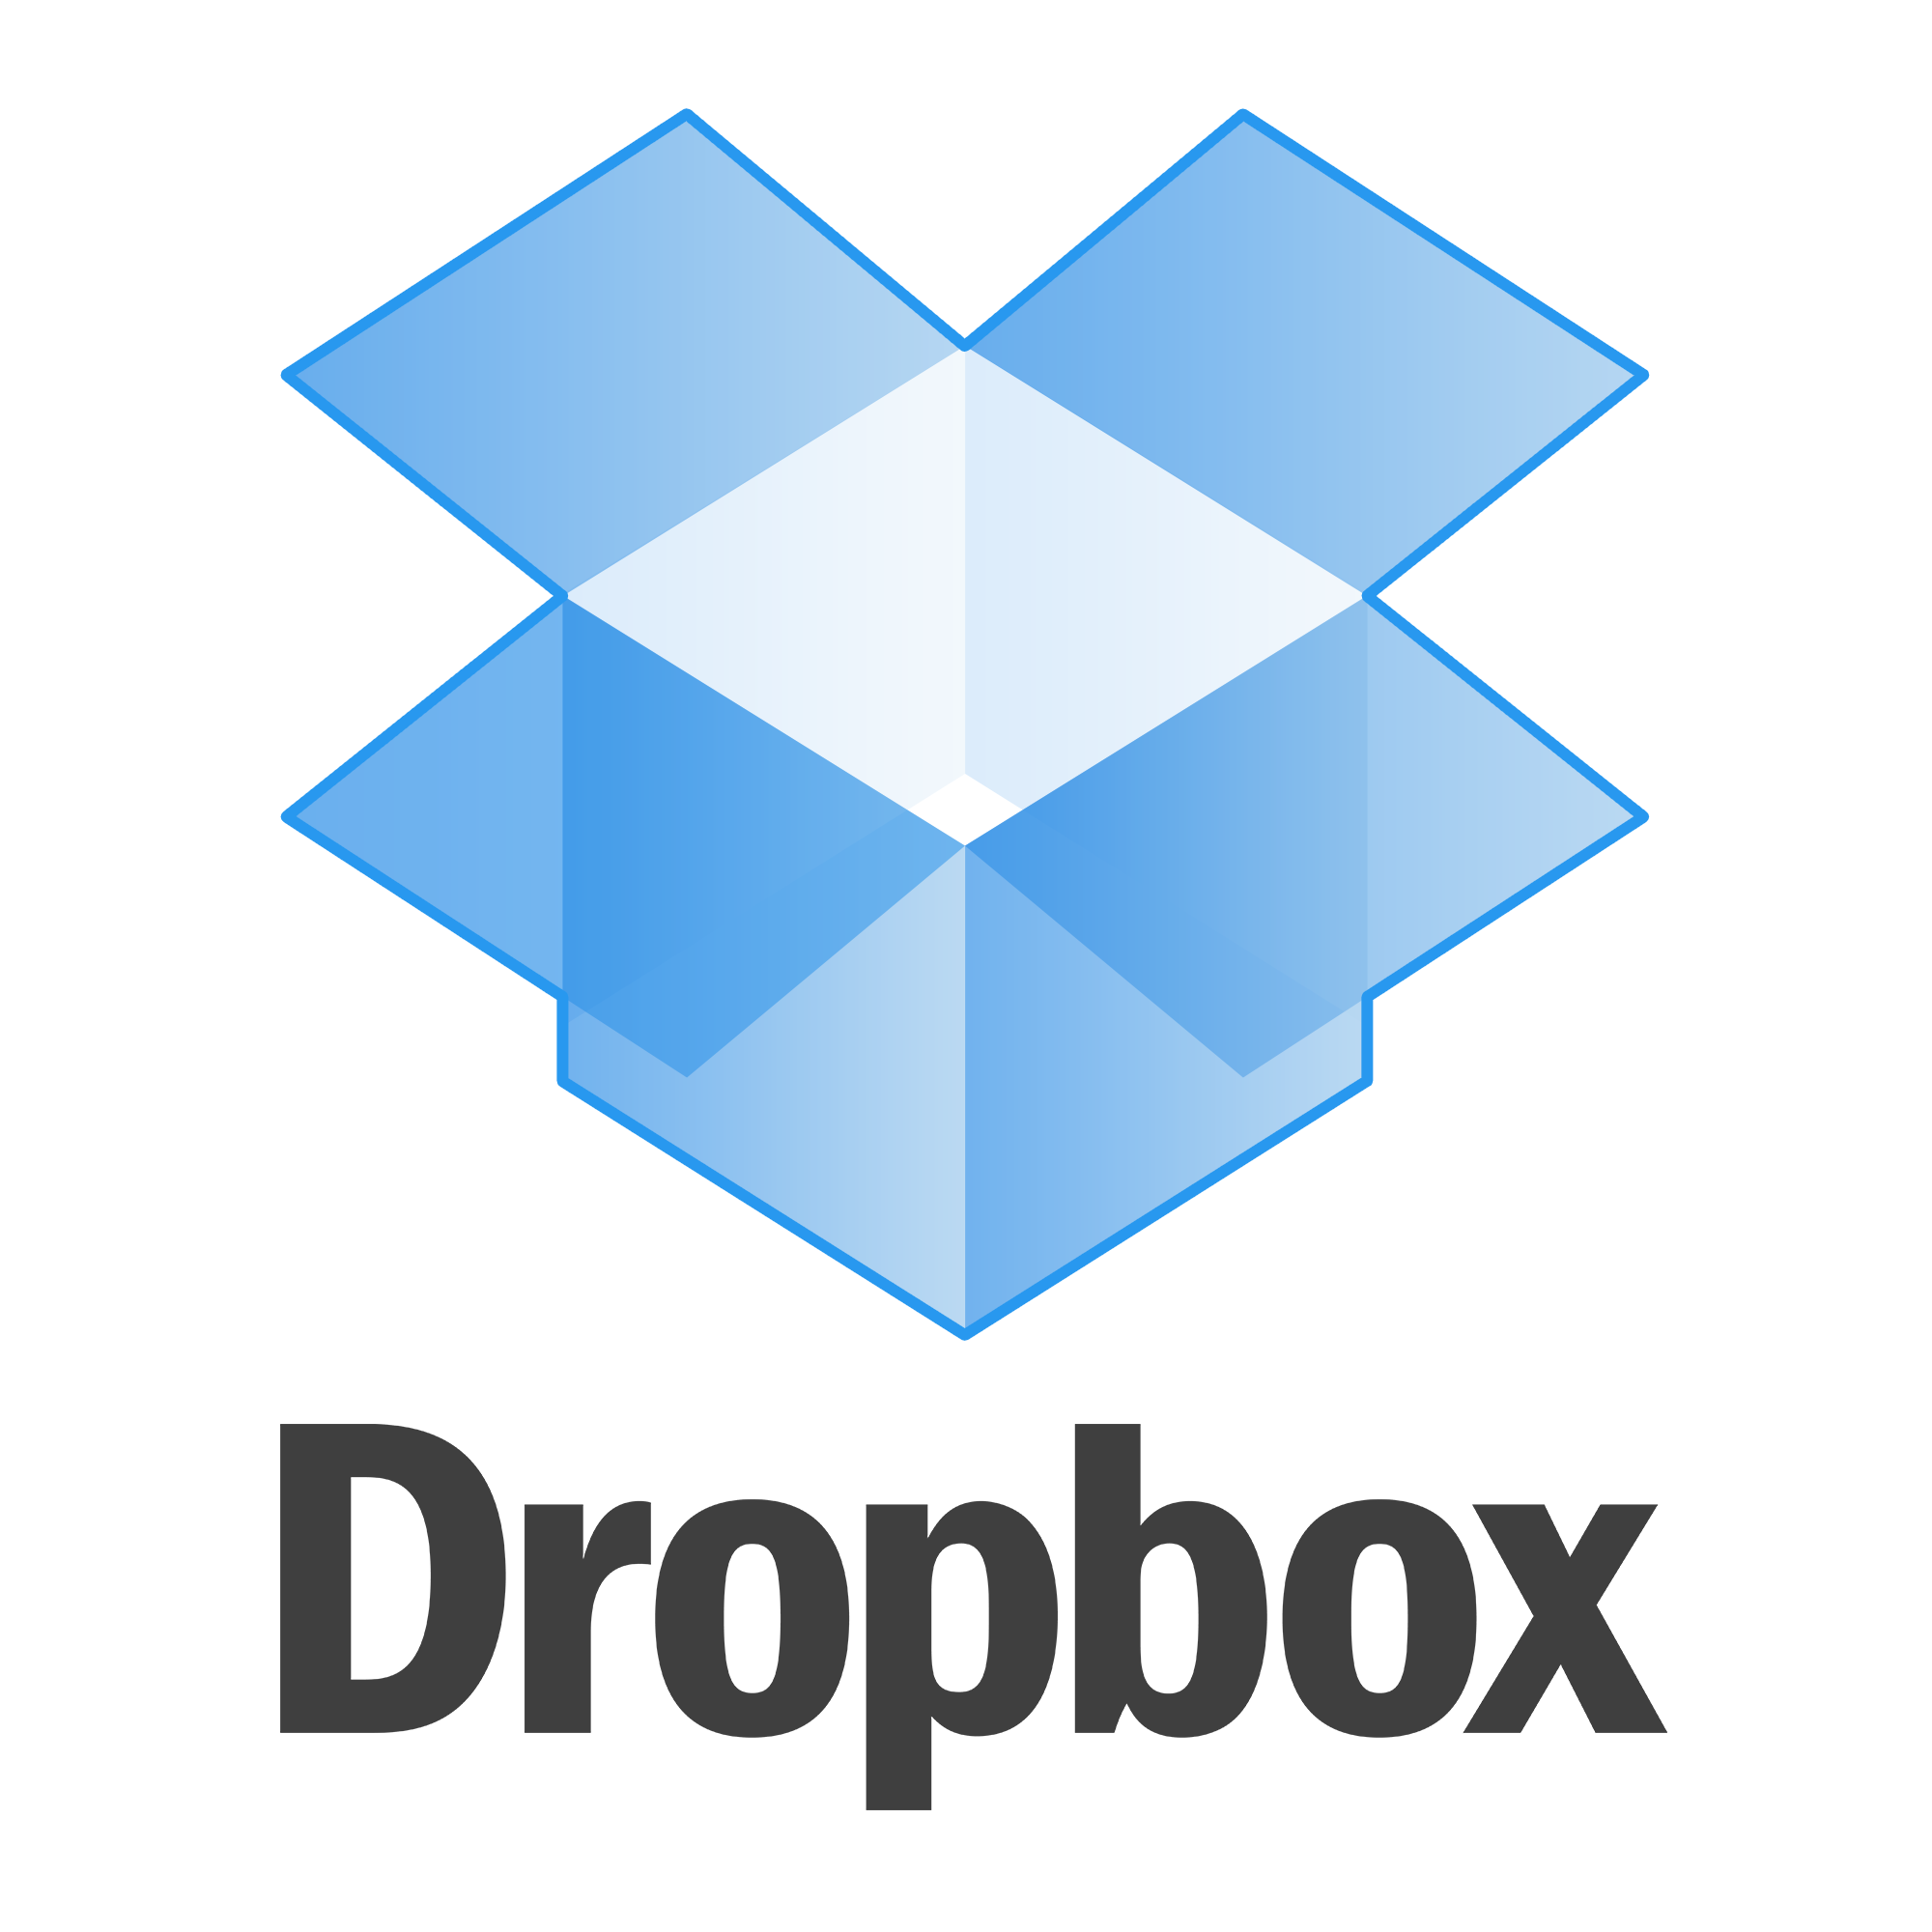 Use Dropbox to send your files!